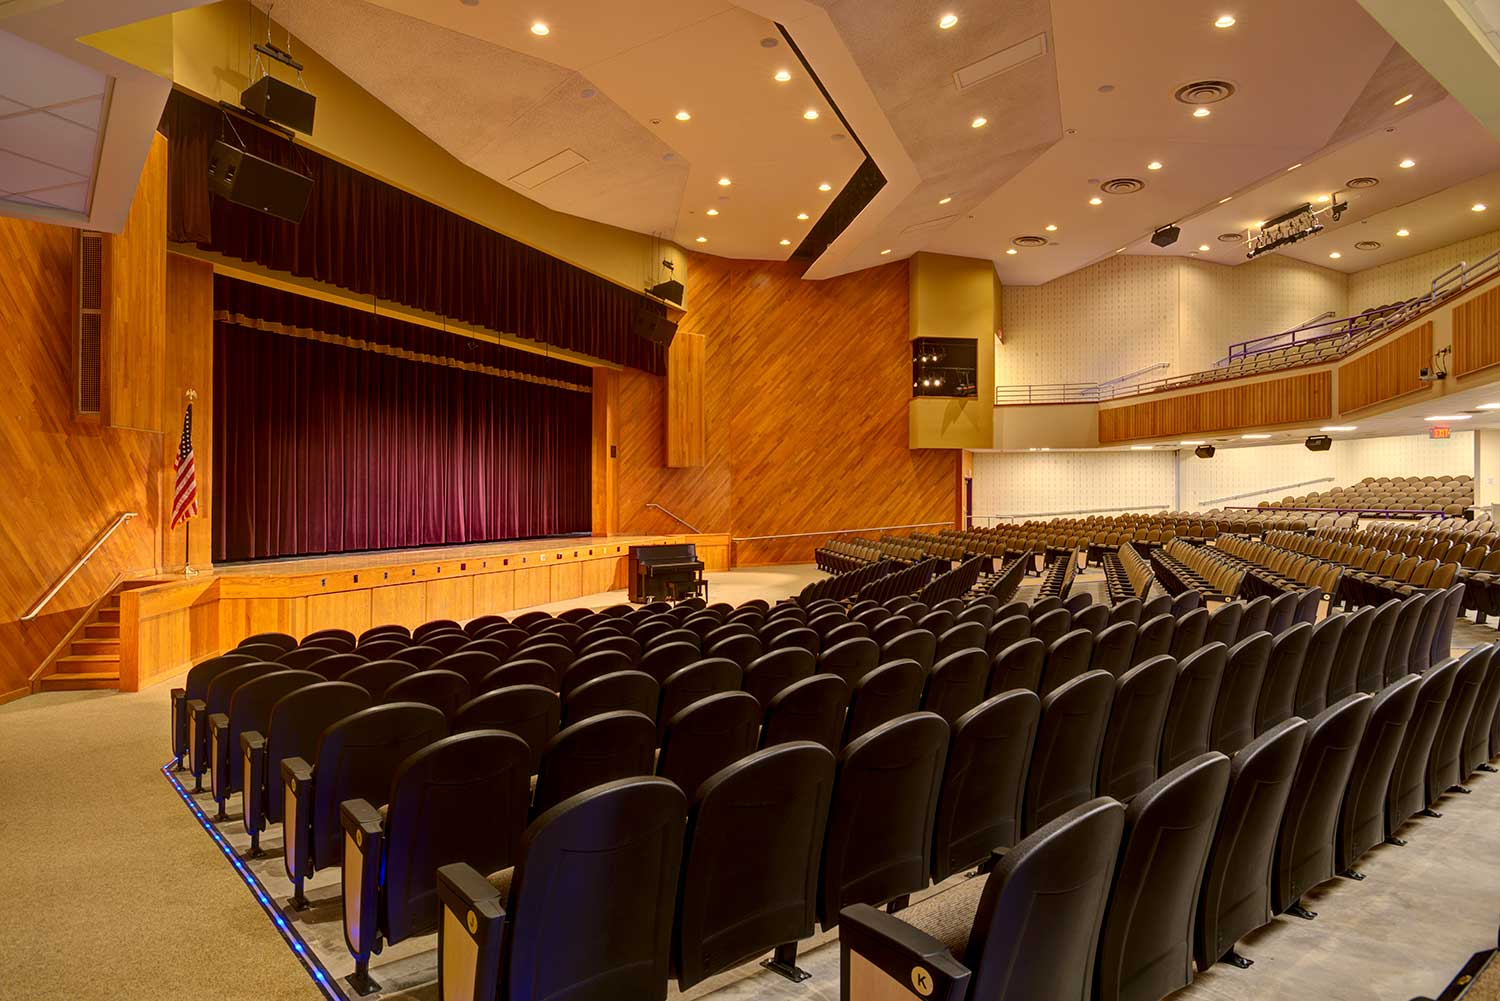 Mosaic's design for the Troy, NY, Middle school music wing and auditorium included an extensive theatrical, lighting and audio-visual installation.